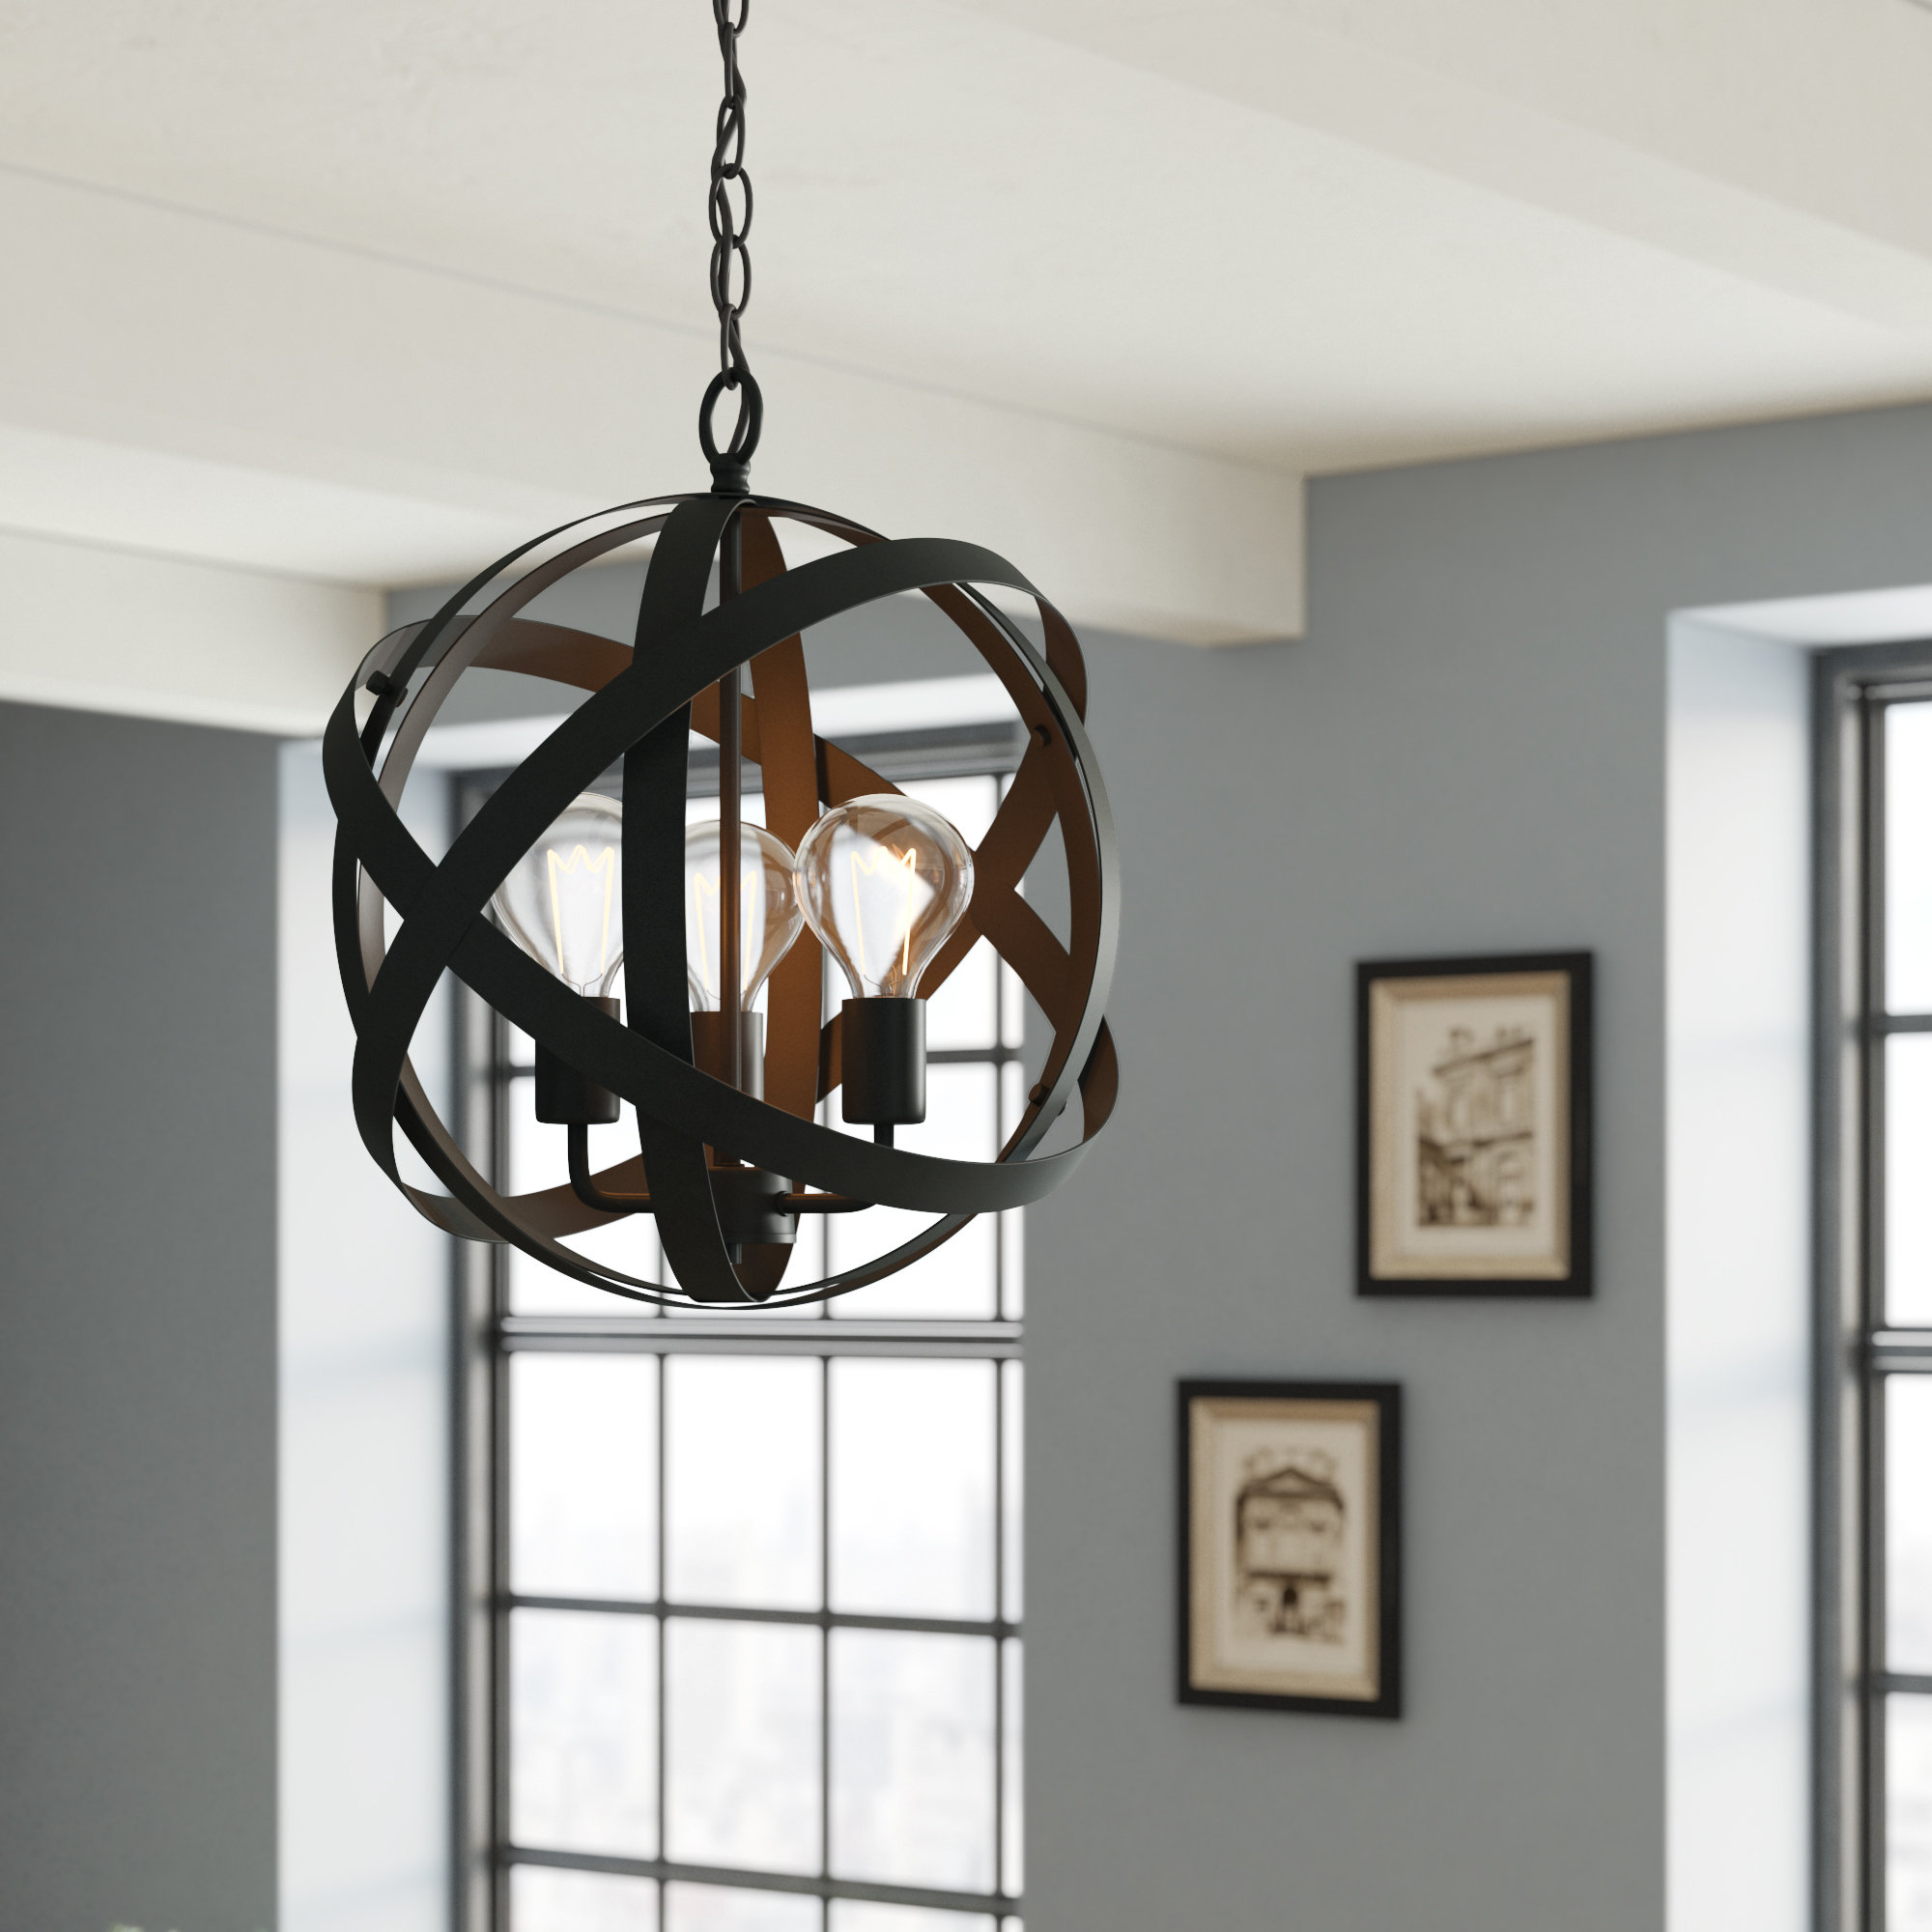 2019 Shipststour 3 Light Globe Chandeliers Within Framlingham 3 Light Globe Chandelier (Gallery 11 of 20)